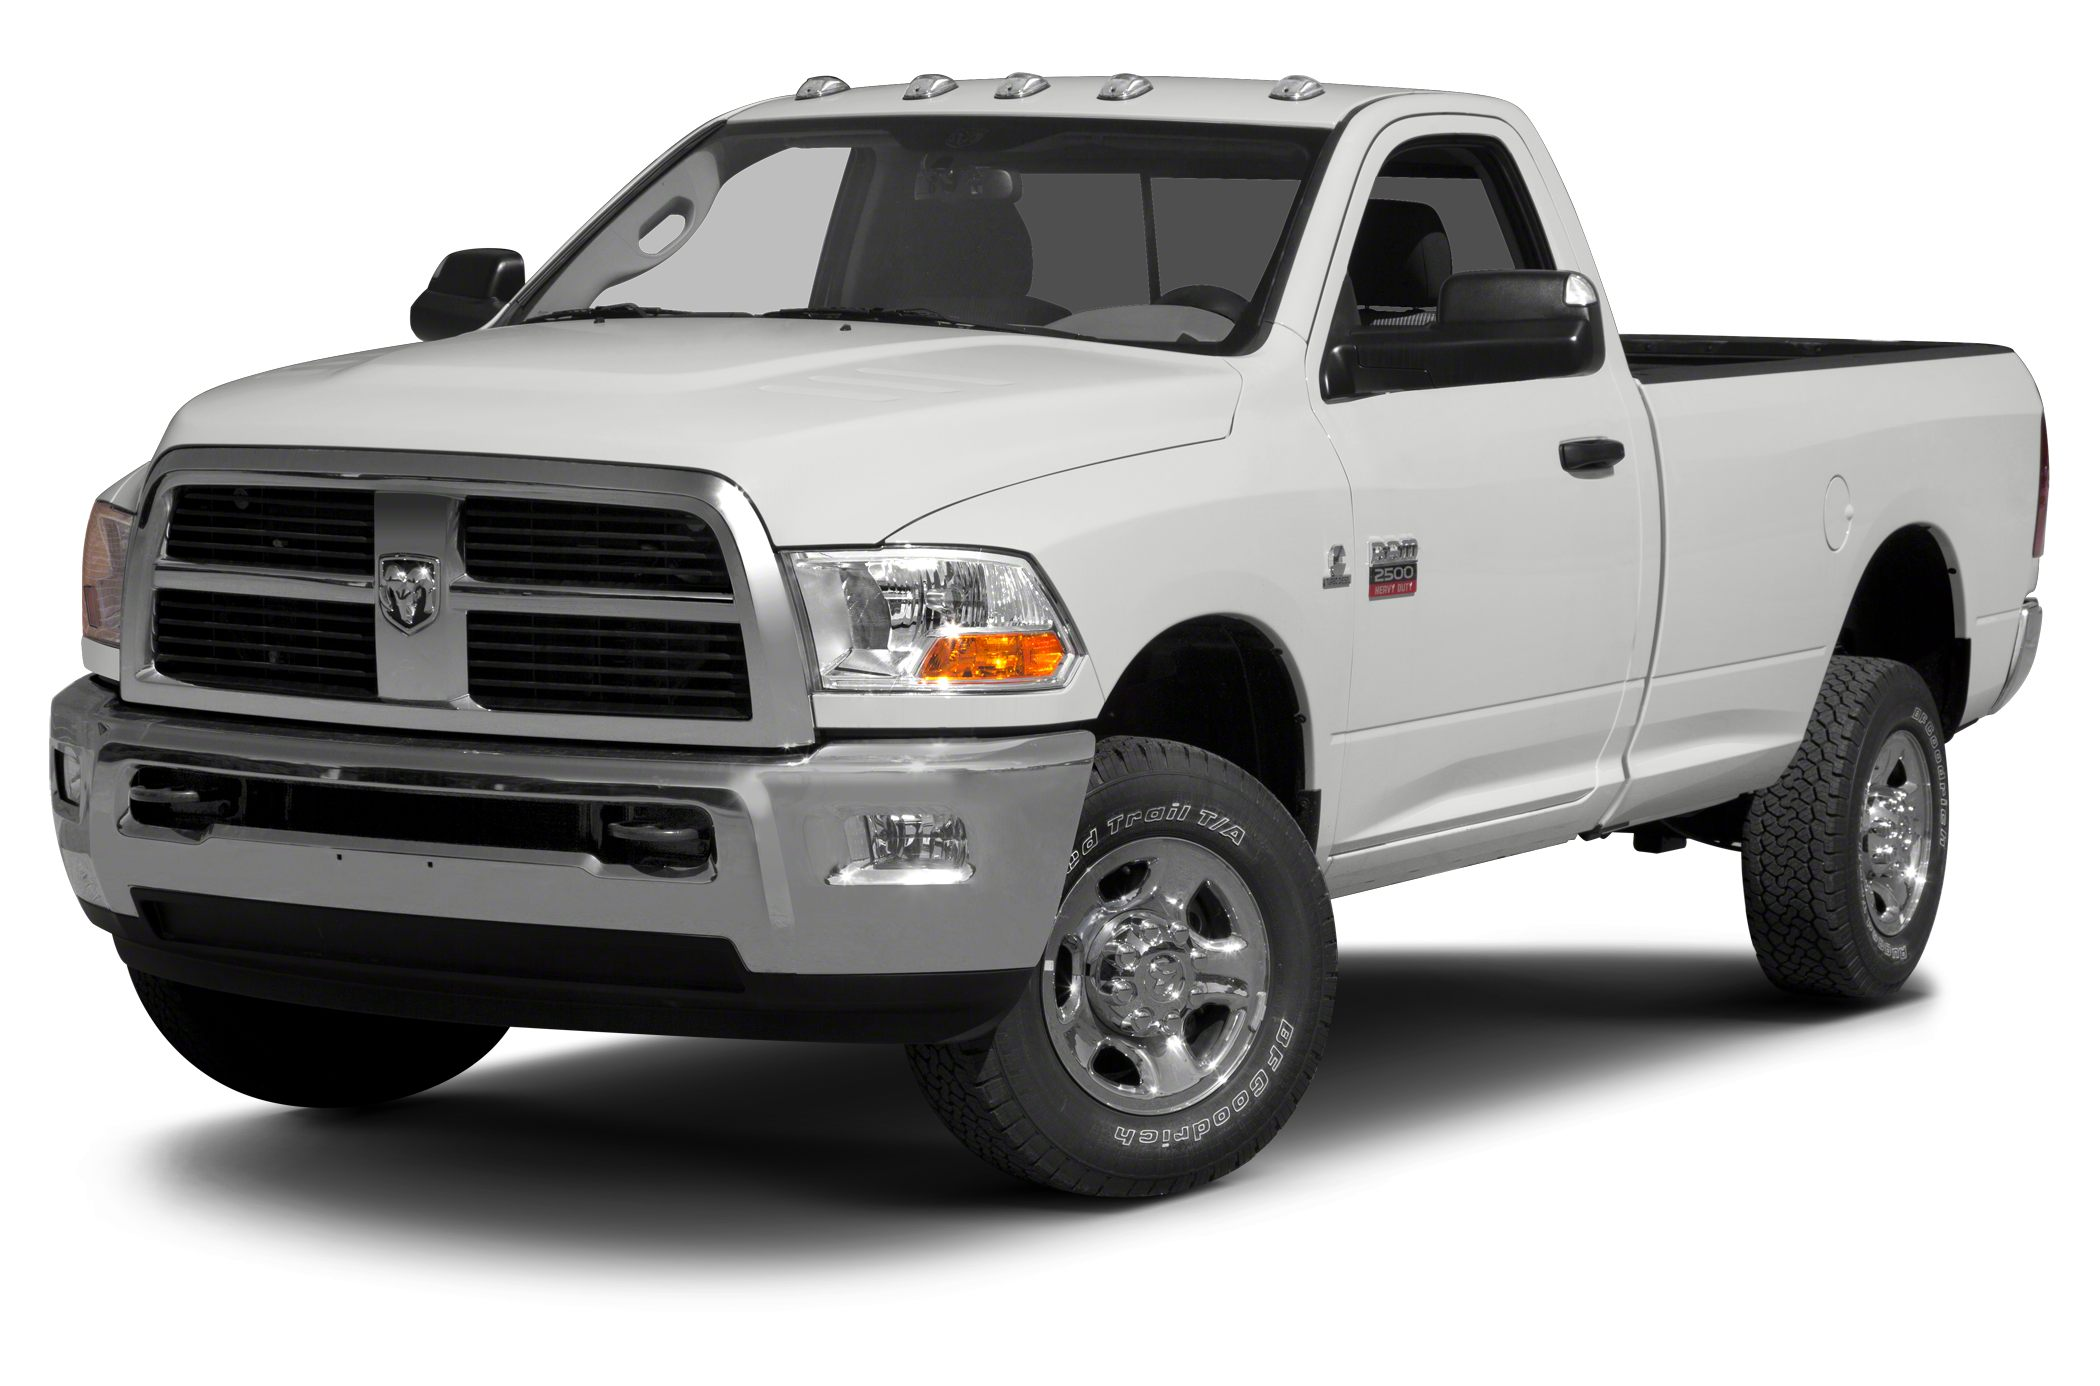 2012 RAM 2500 ST Crew Cab Pickup for sale in Pittsburgh for $37,225 with 15,186 miles.